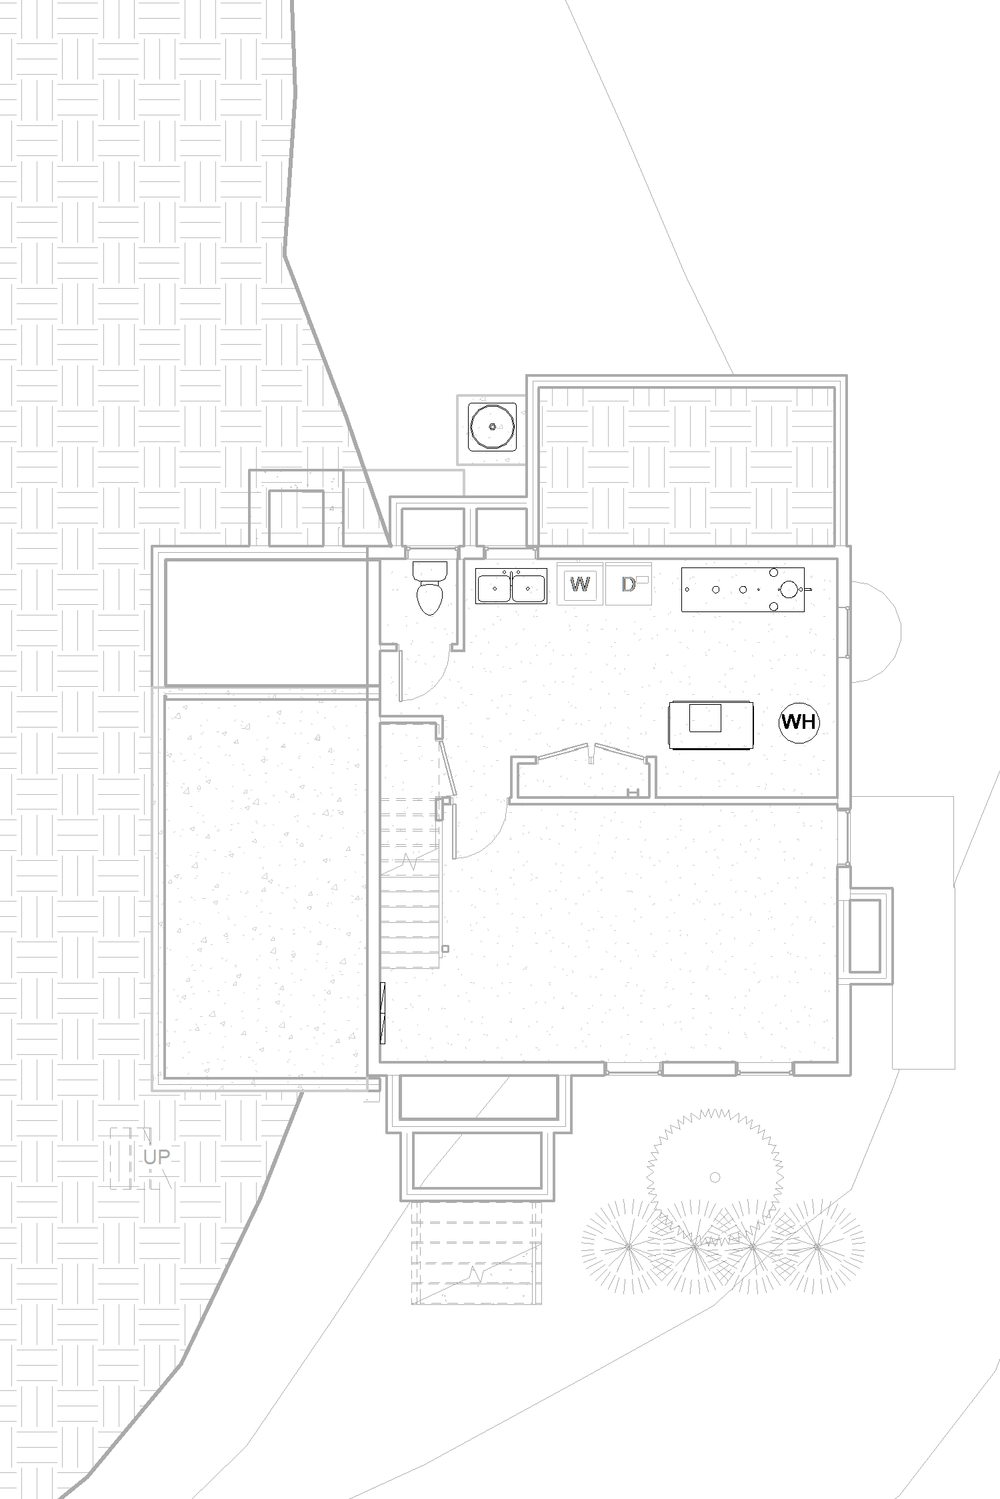 2014-04 4015 Veazey St NW_CENTRAL_09 - Floor Plan - BASEMENT - EXISTING.jpg